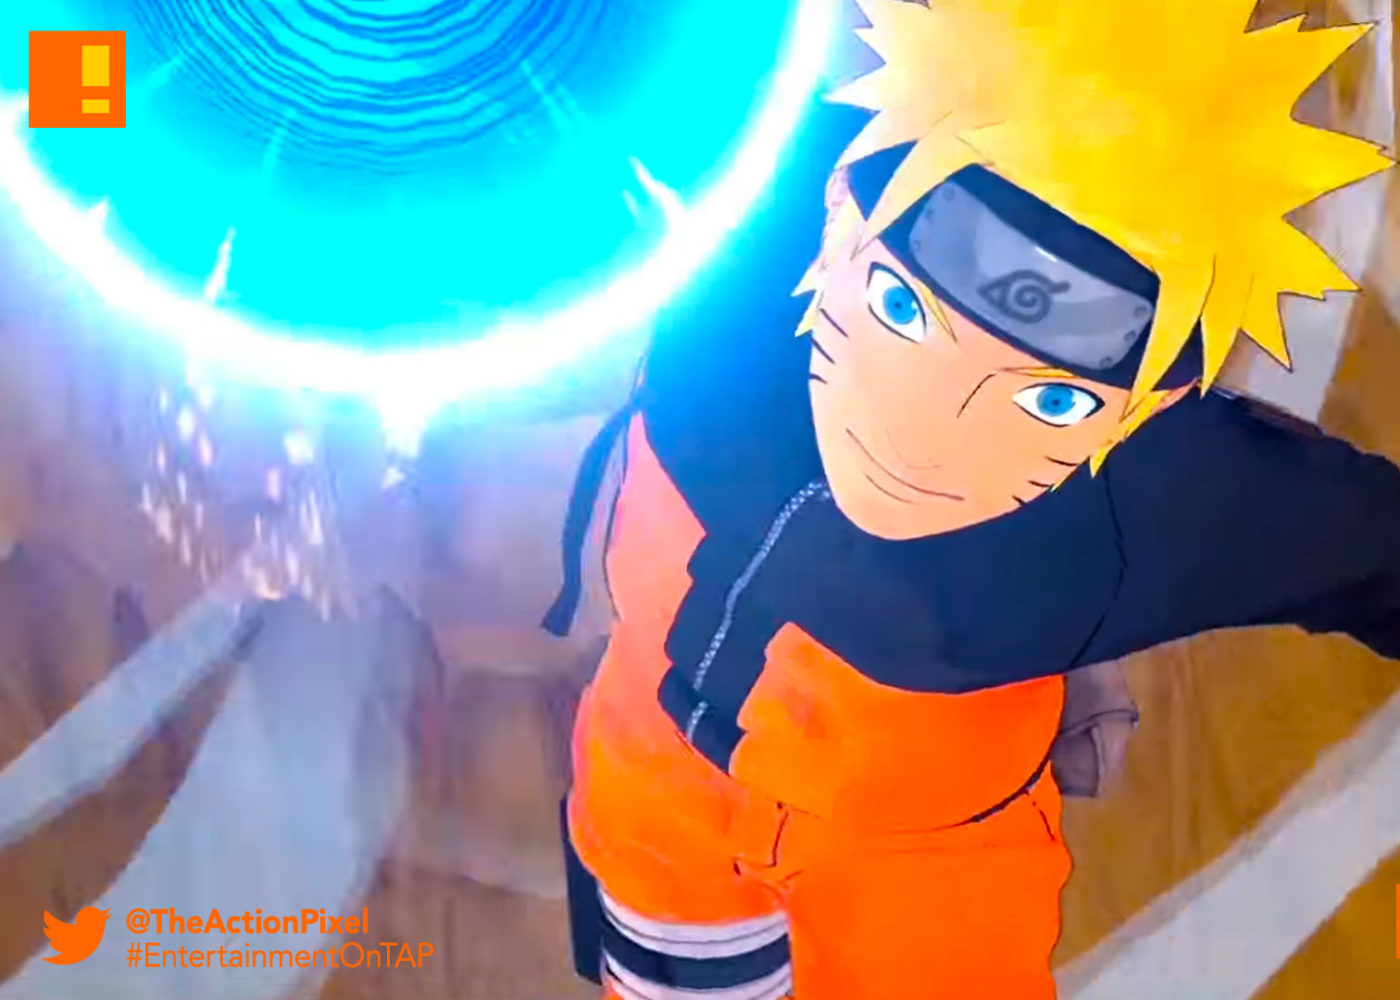 narutoto boruto: shinobi strike, the action pixel, naruto, entertainment on tap, the action pixel